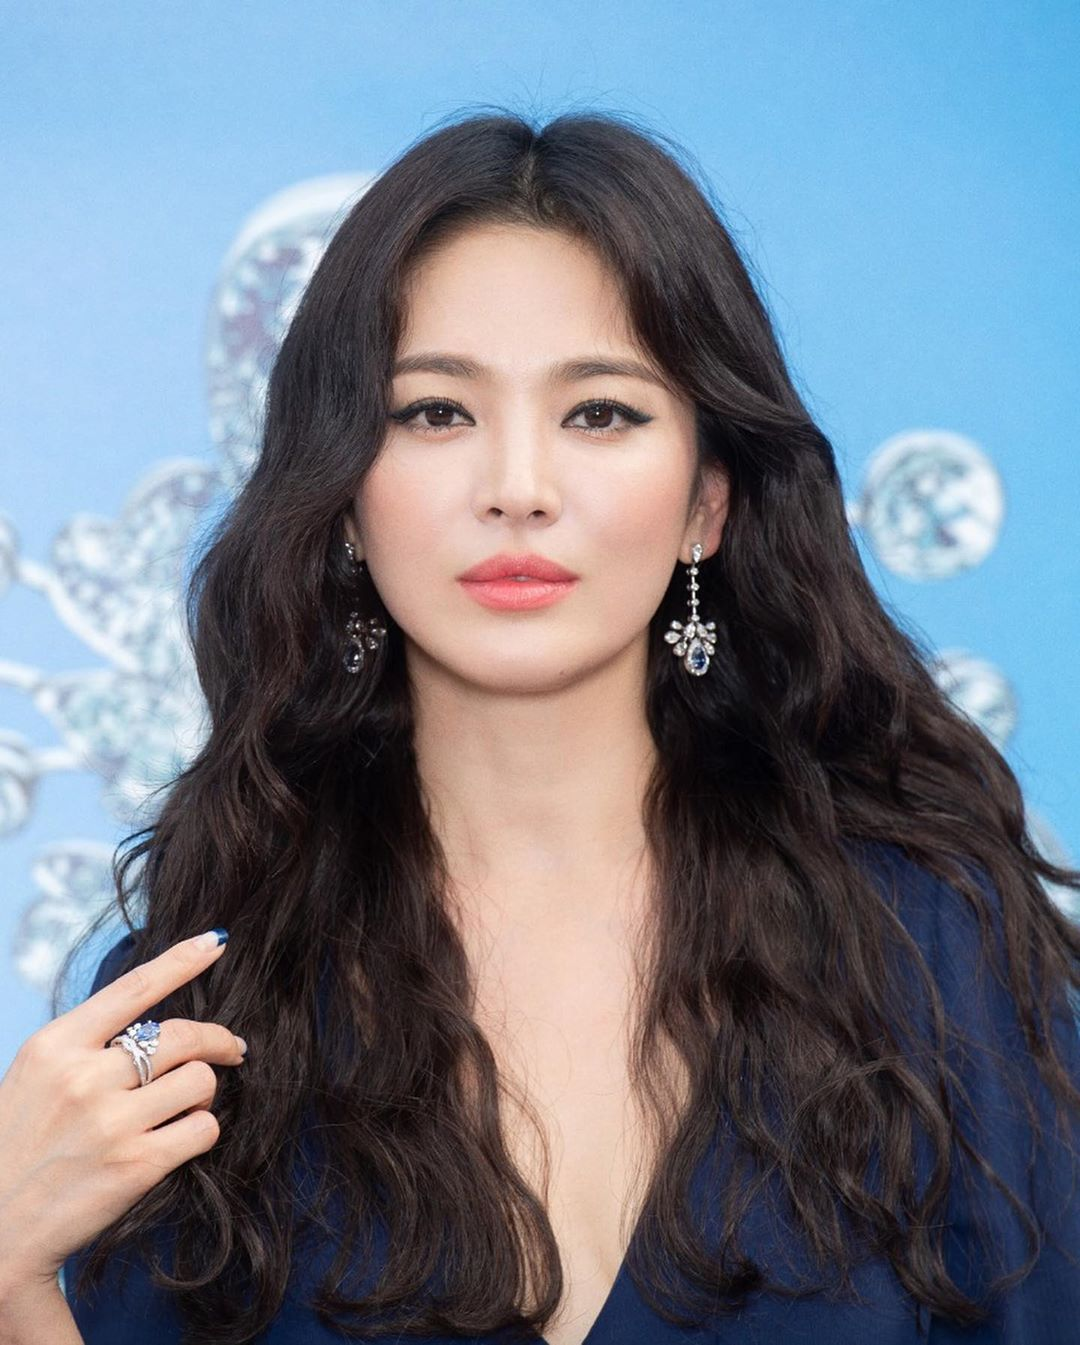 Song Hye Kyo To Make Her First Public Appearance In Korea Since Her Divorce Kissasian Beauty Song Hye Kyo Asian Beauty Girl